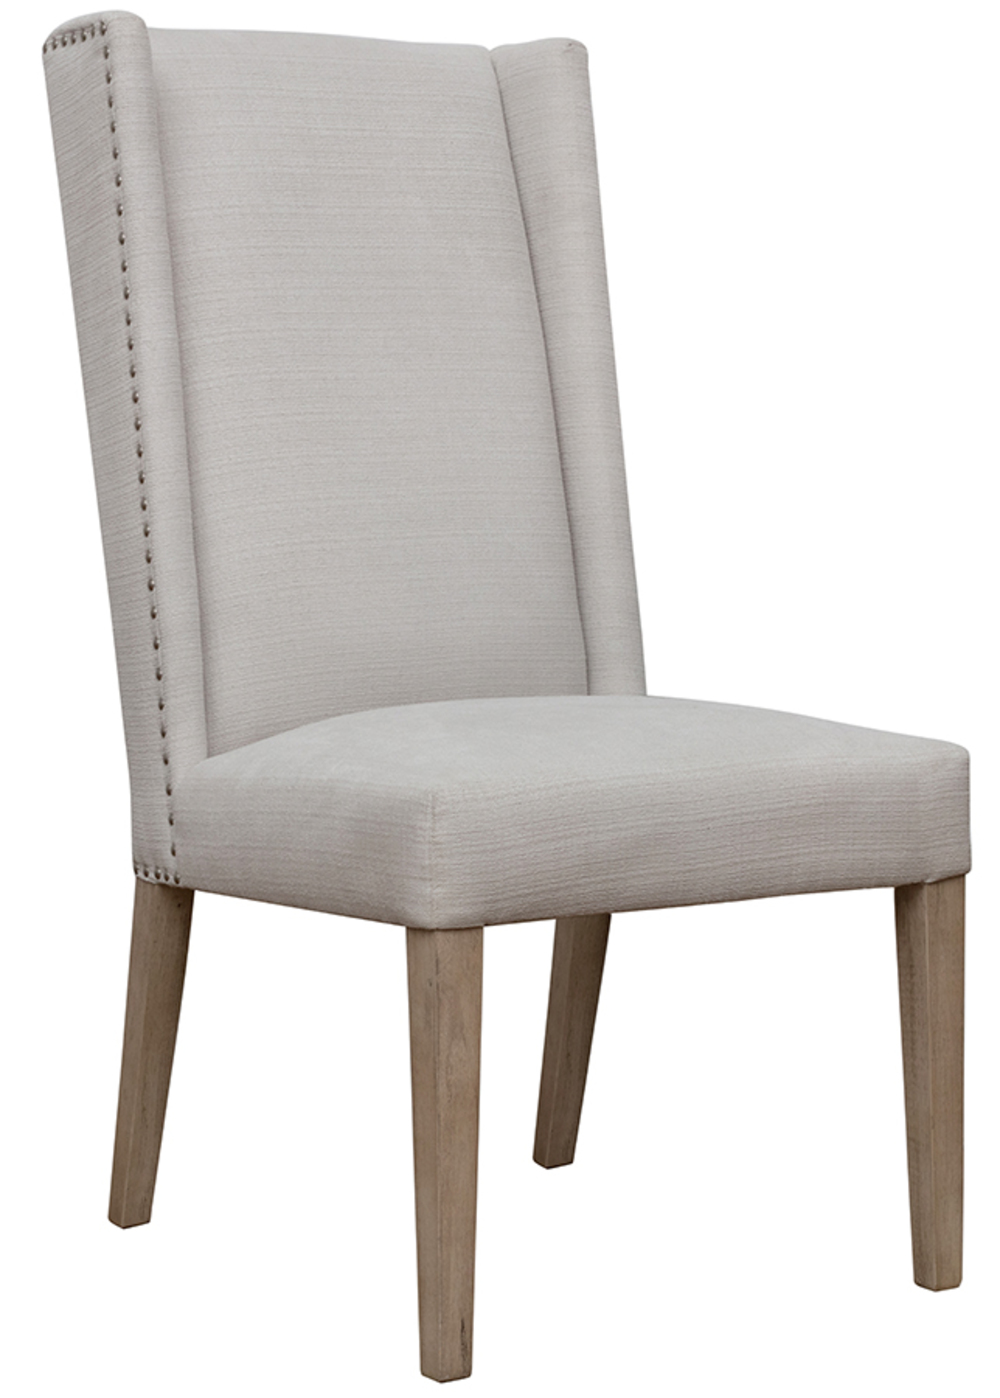 Dovetail Furniture - Maine Dining Chair